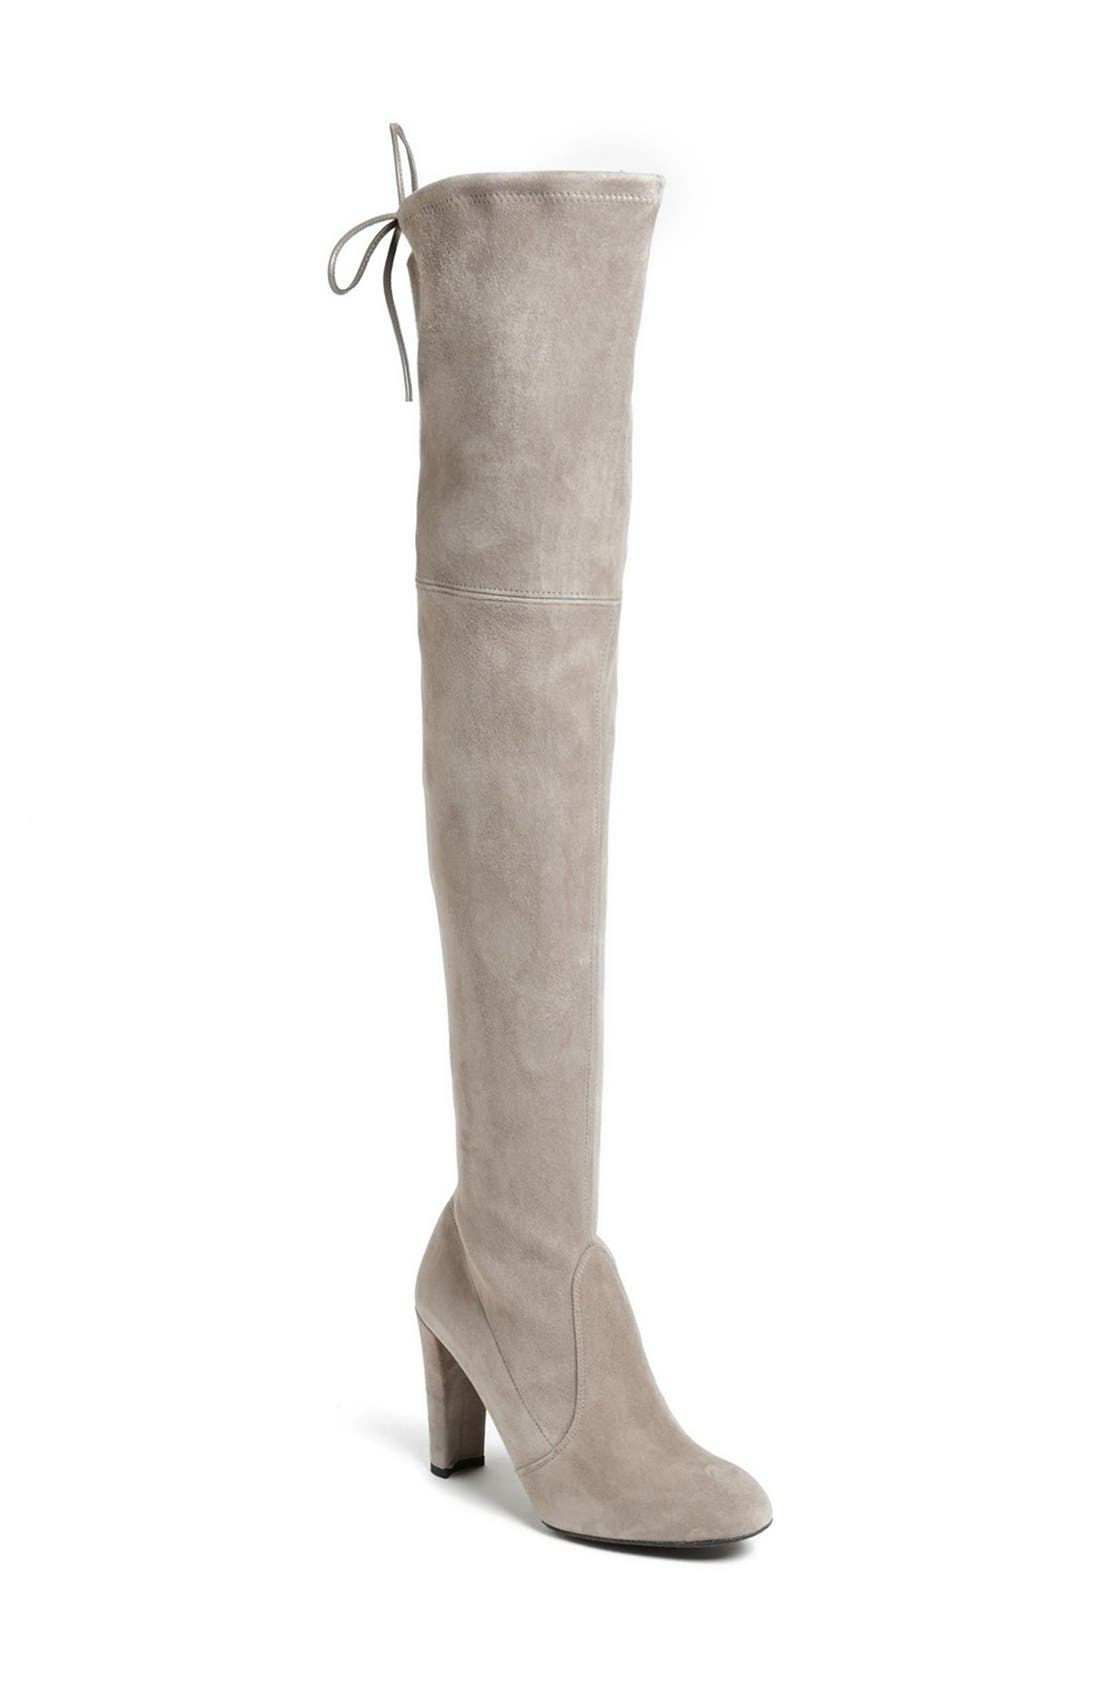 Alternate Image 1 Selected - Stuart Weitzman 'Highland' Over the Knee Boot (Women)